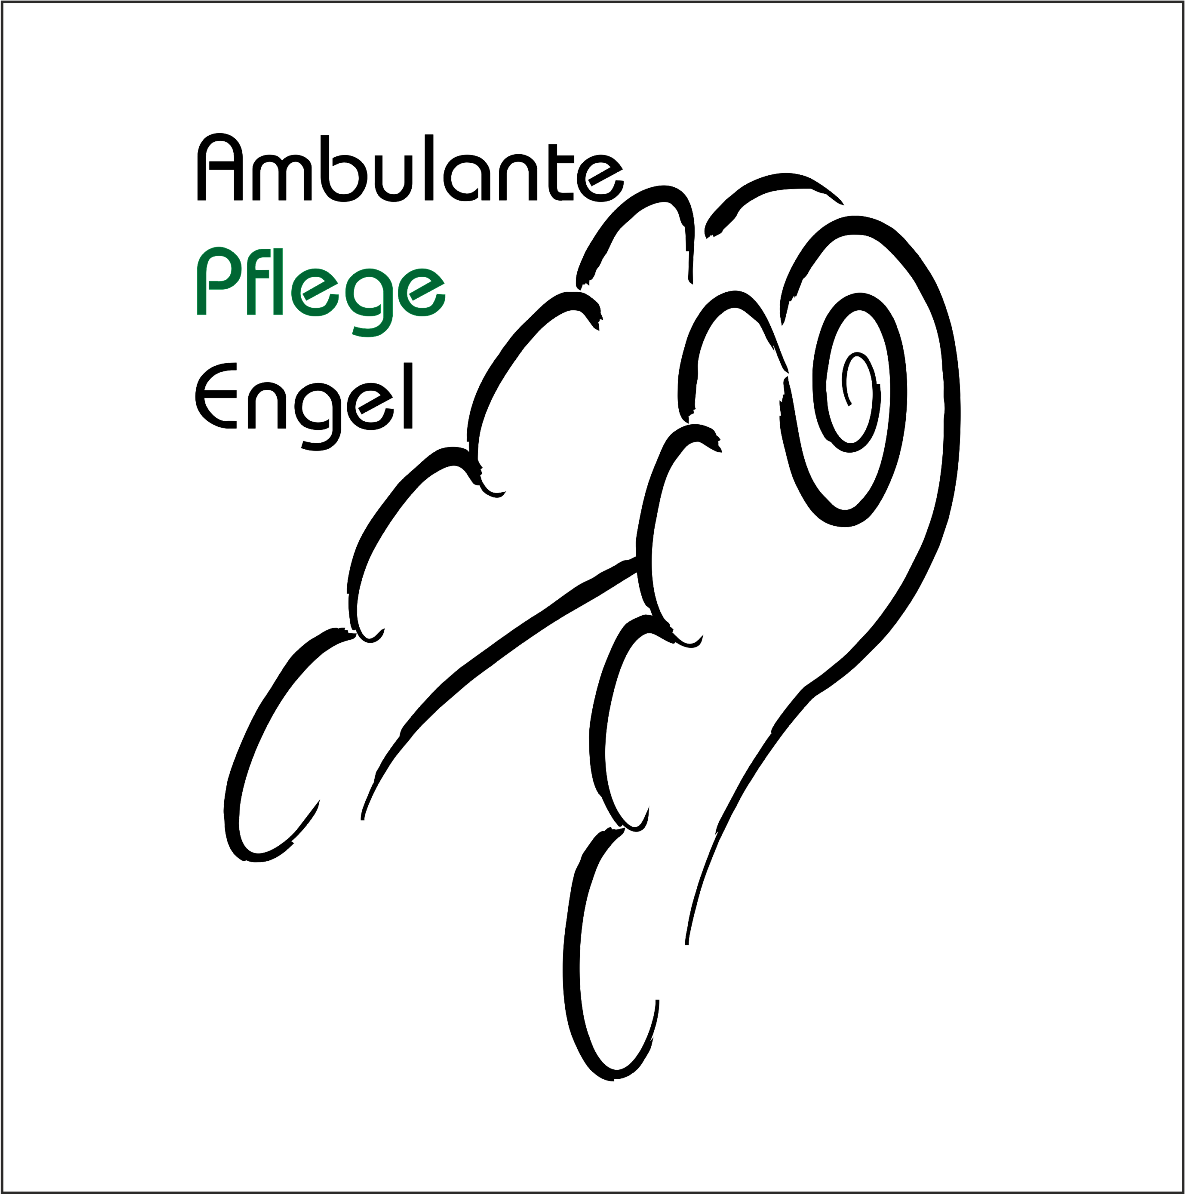 Ambulante Pflegeengel